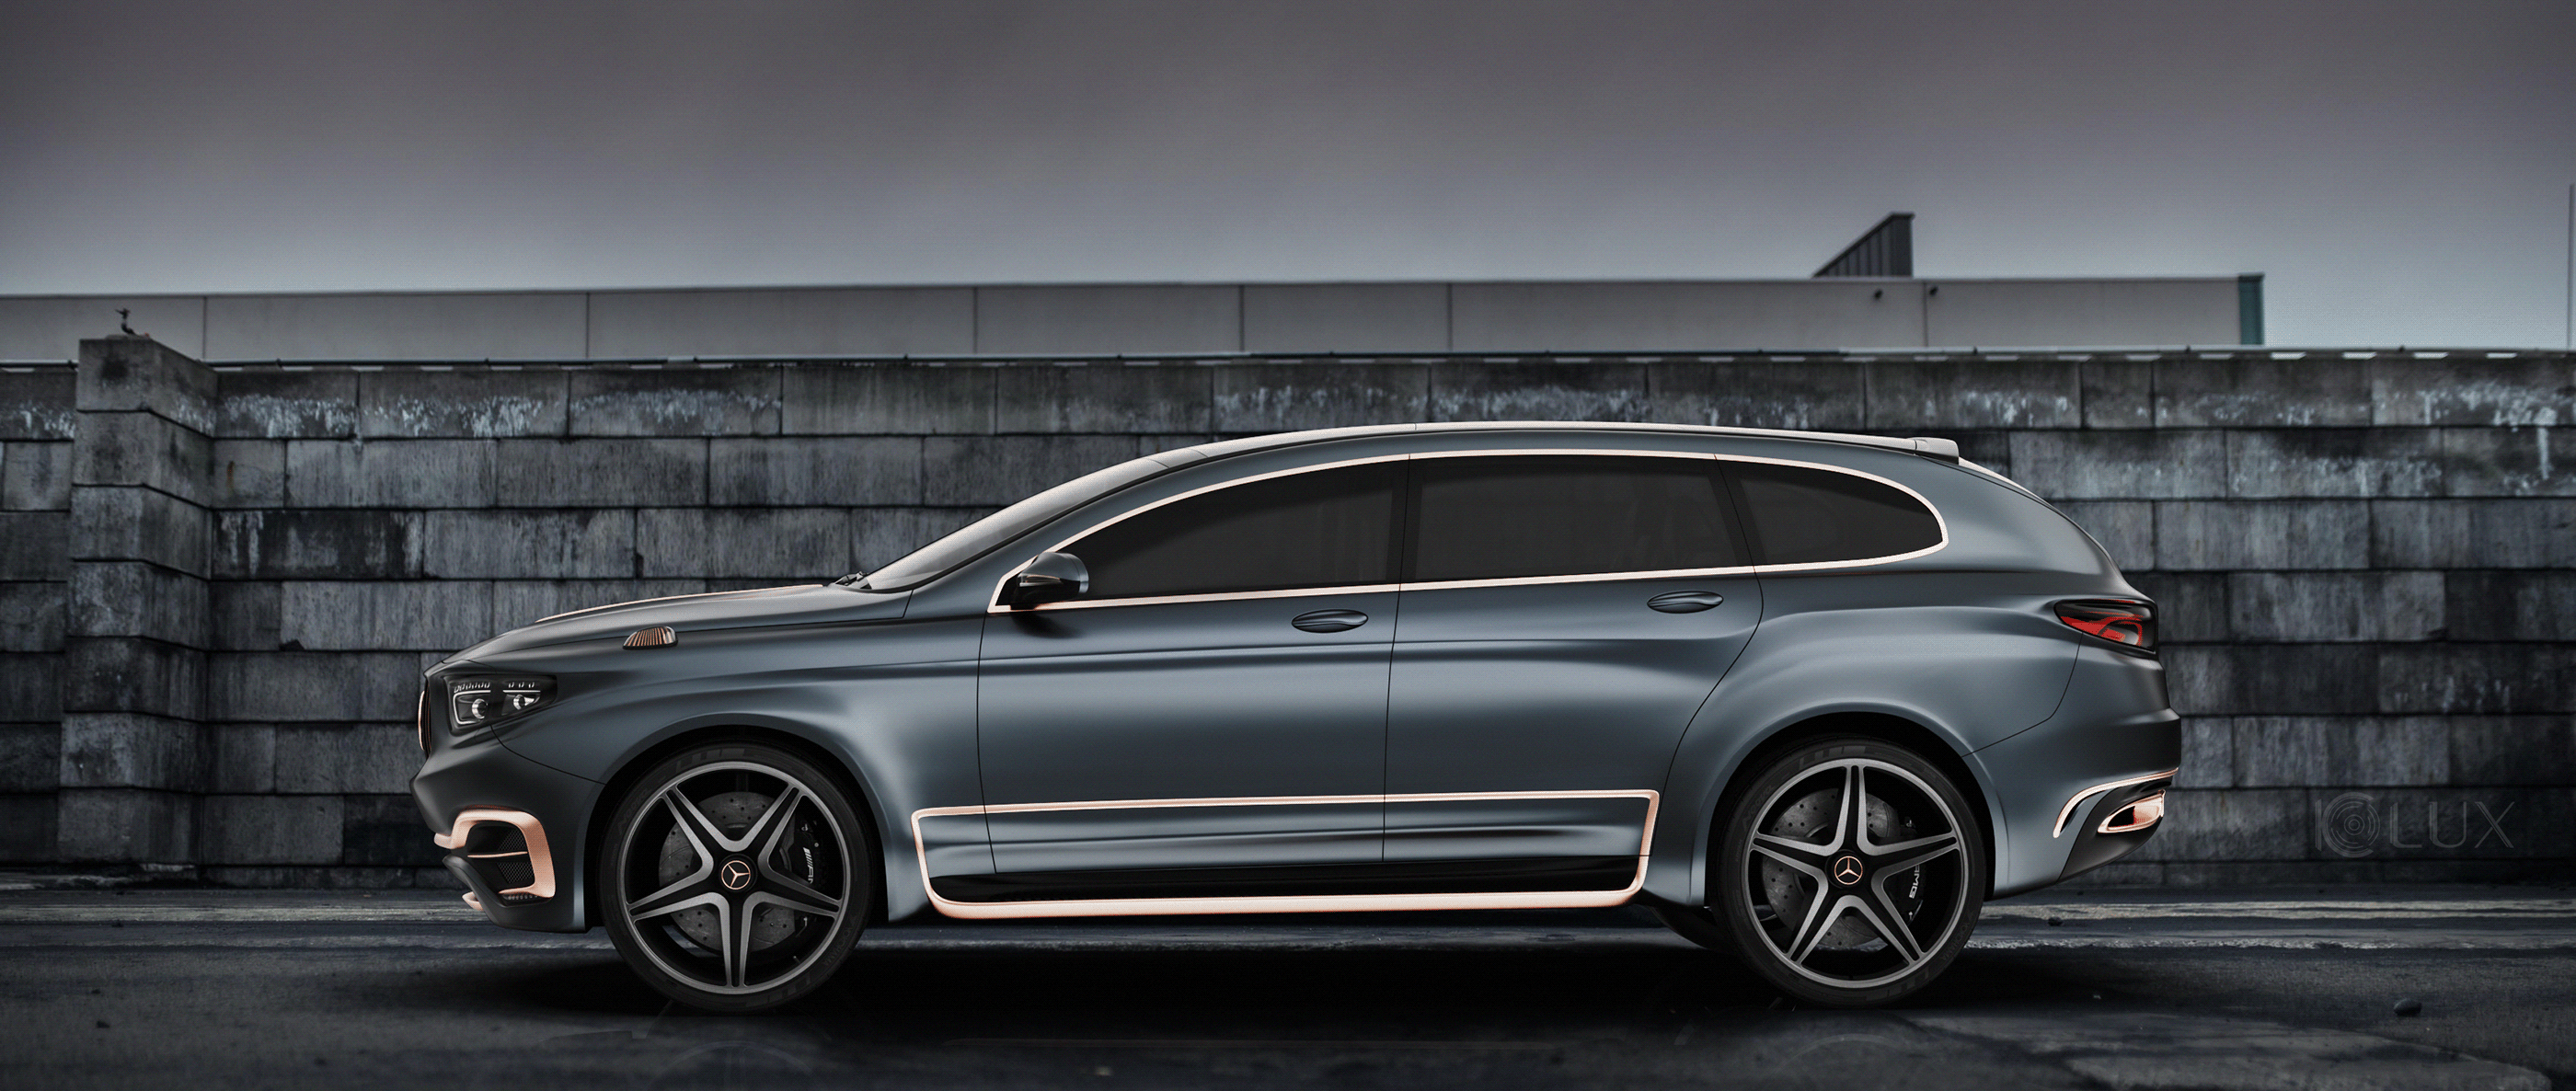 Mercedes-AMG GLS Coupe